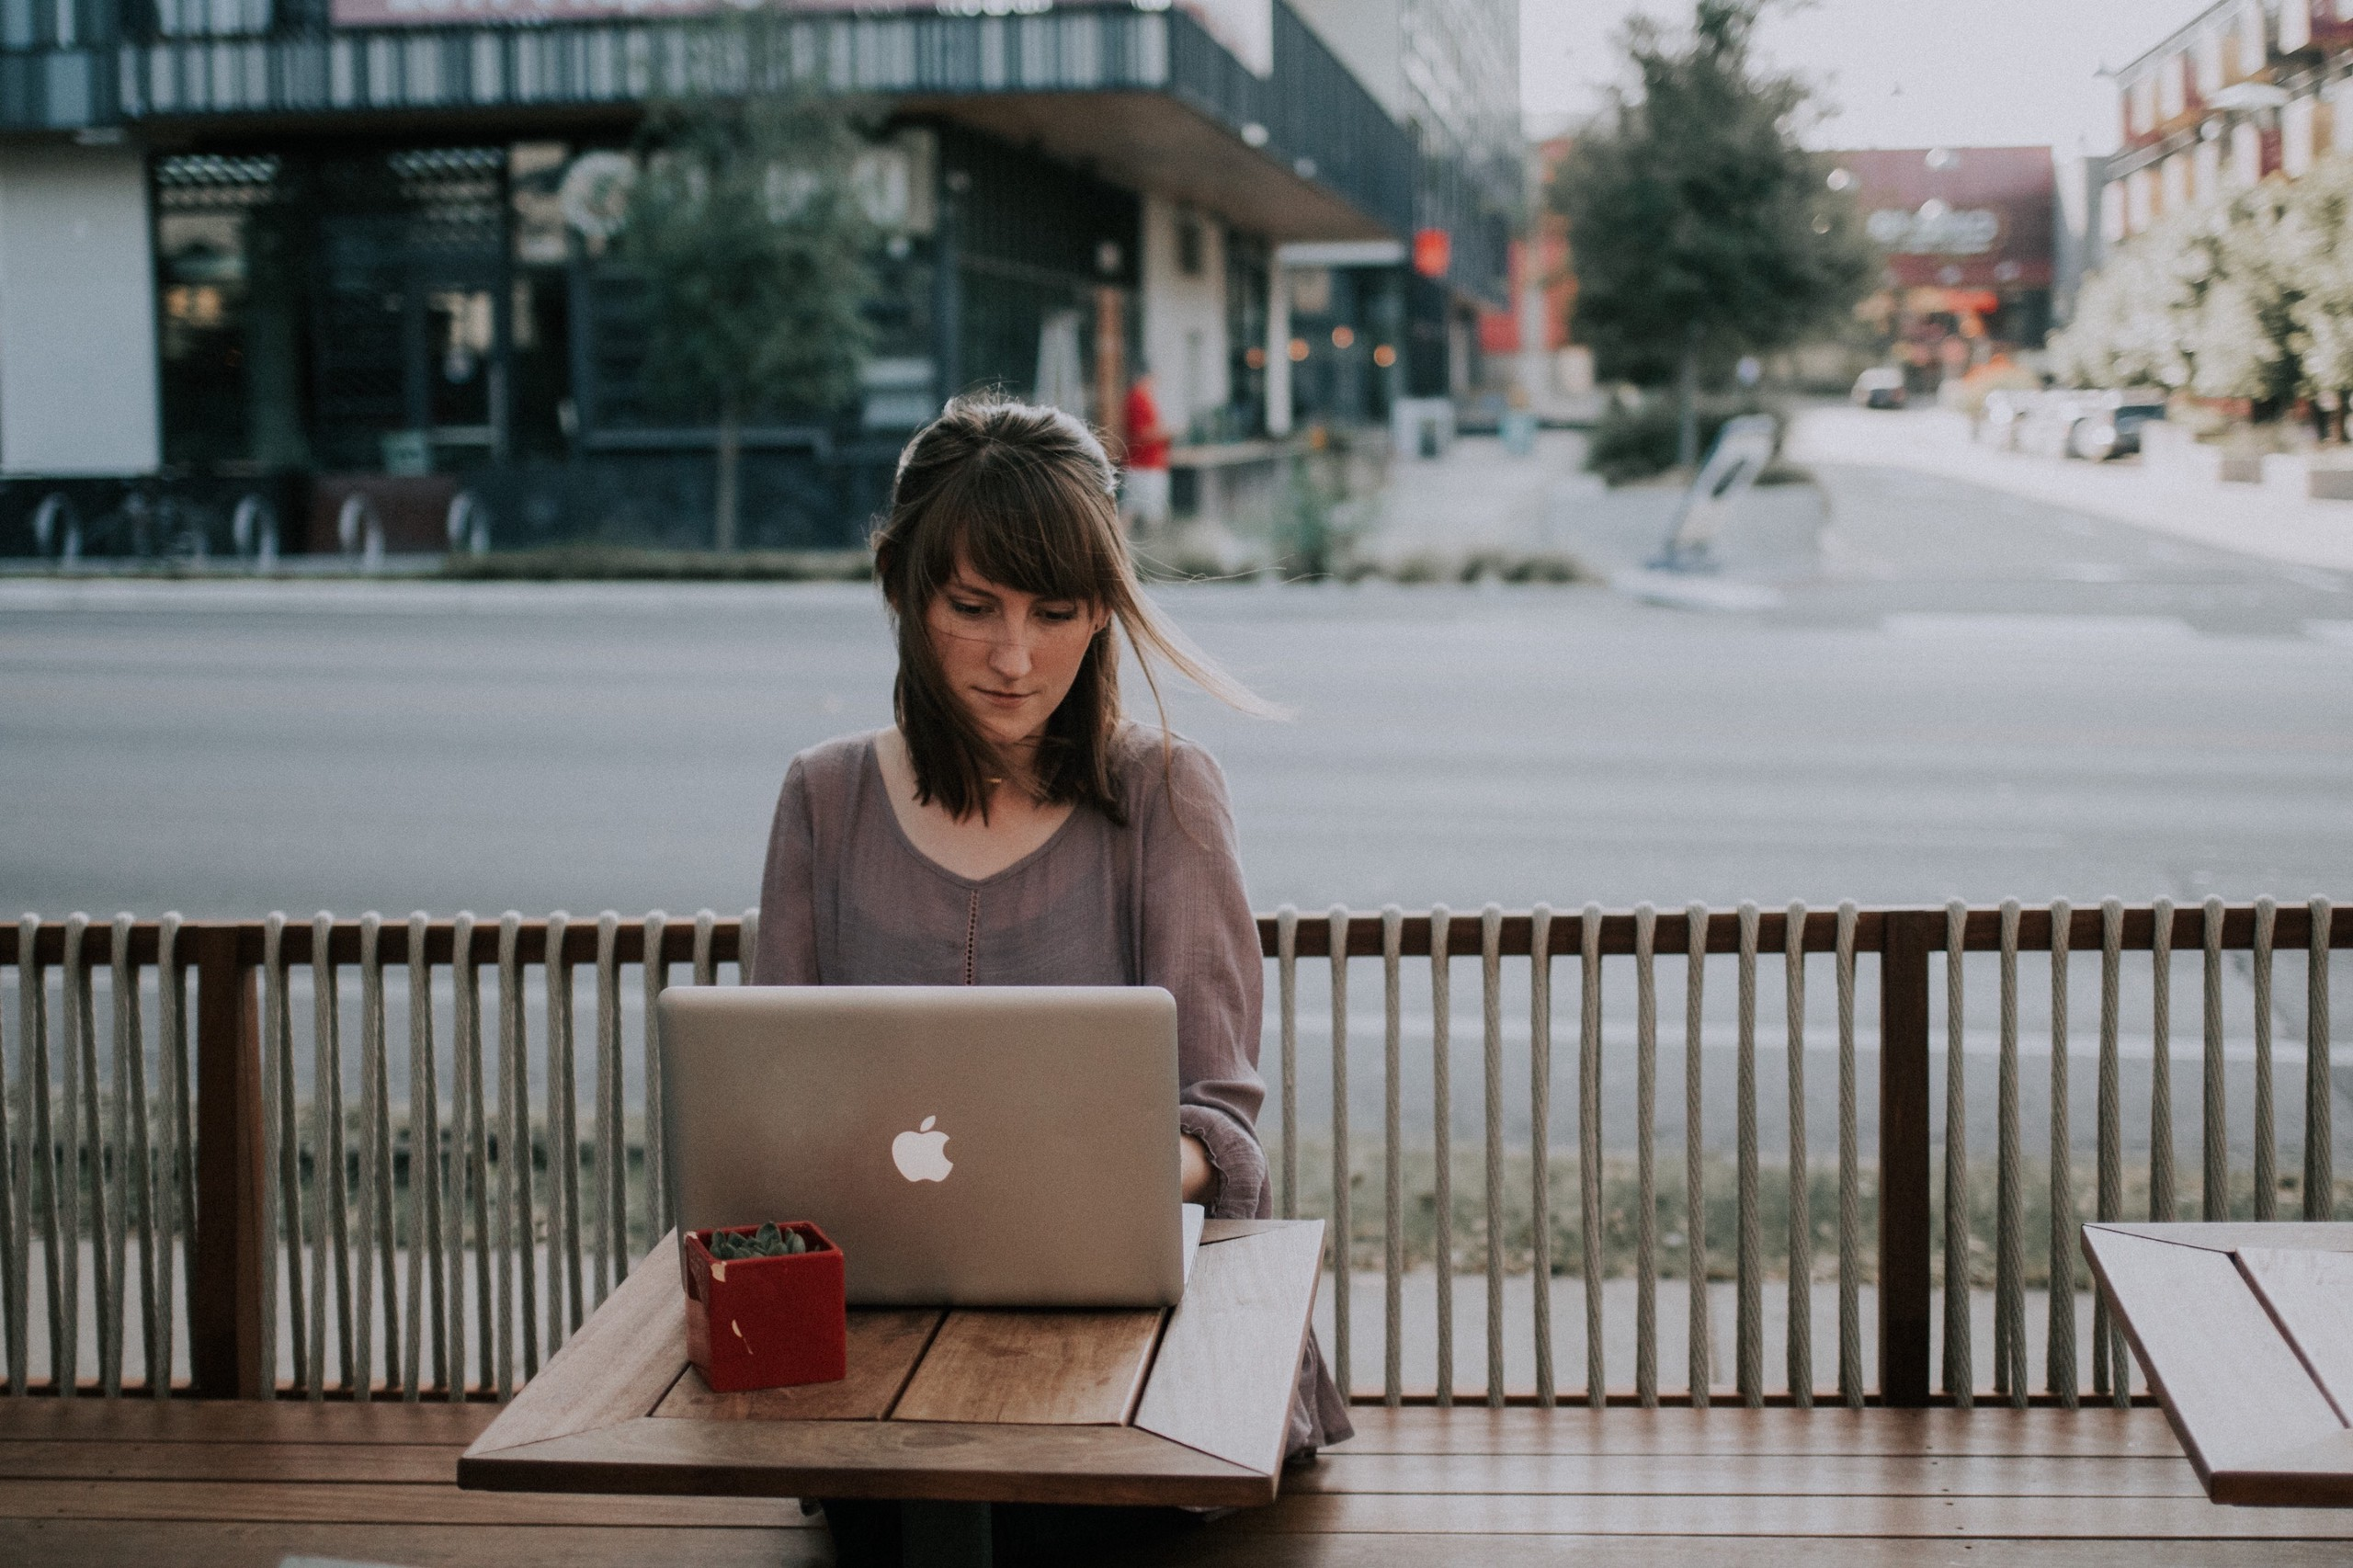 Remote work is the new black?